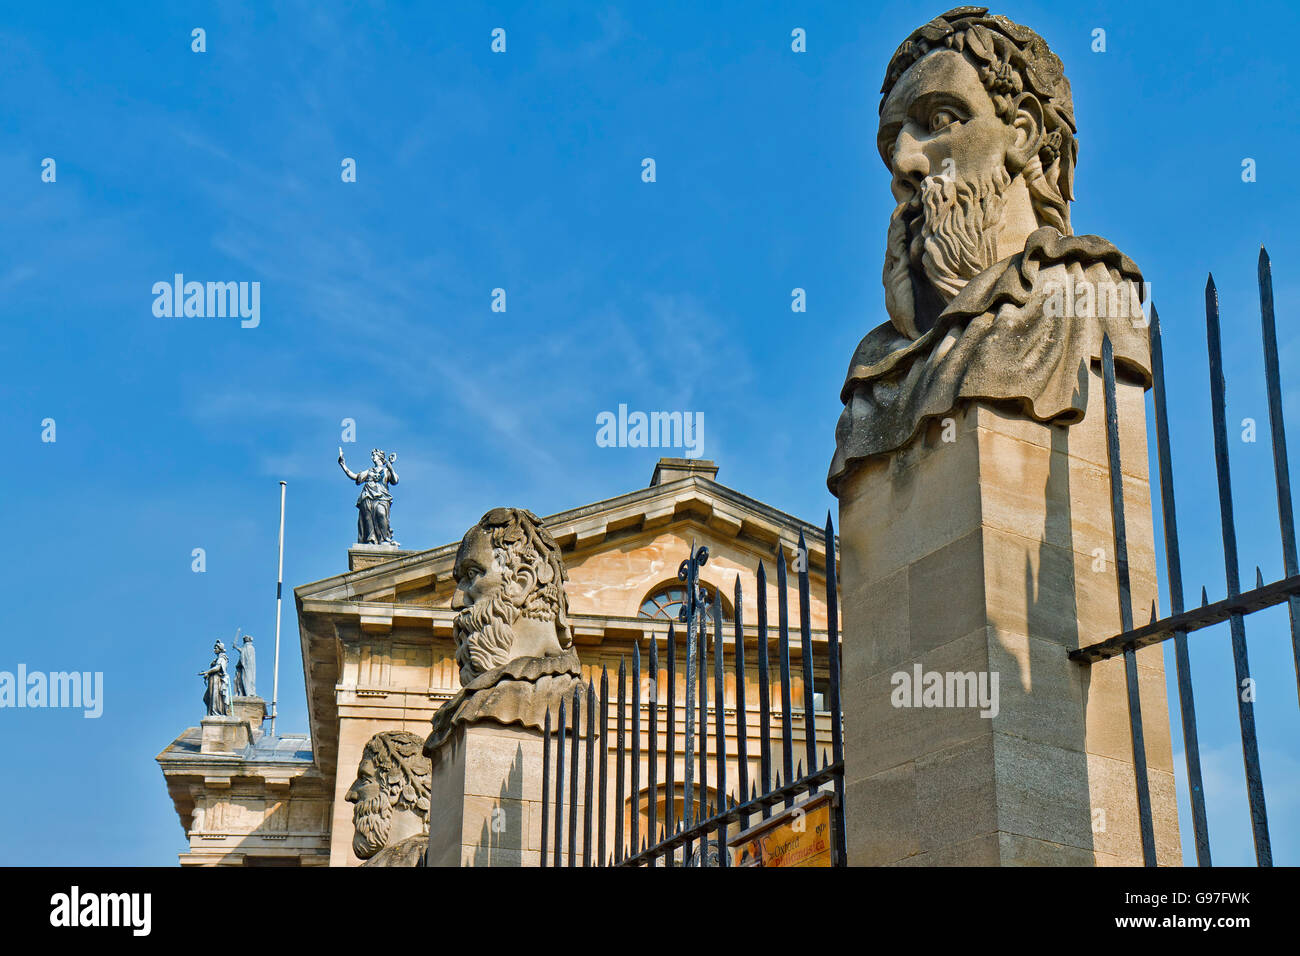 UK Oxford Bearded Ones At The Sheldonian Theatre - Stock Image